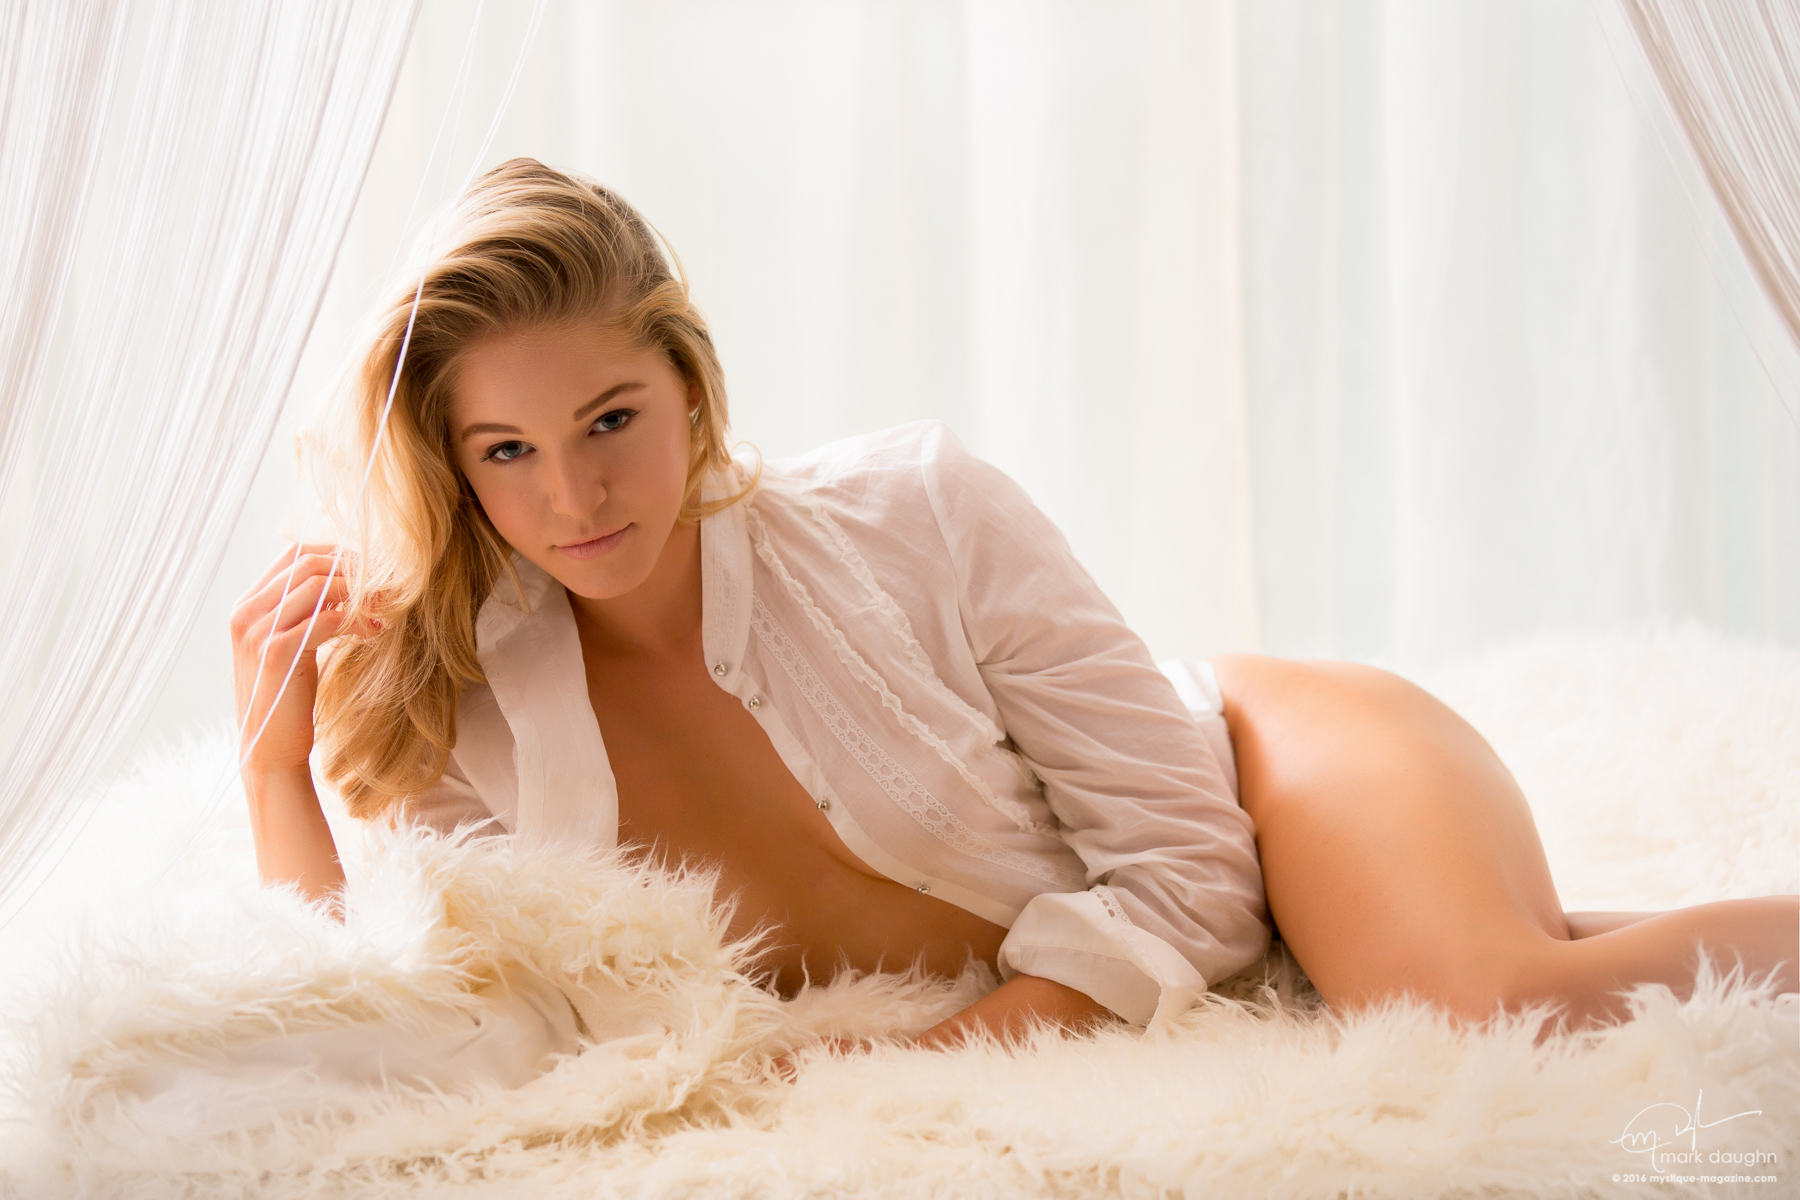 courtney tailor nudes